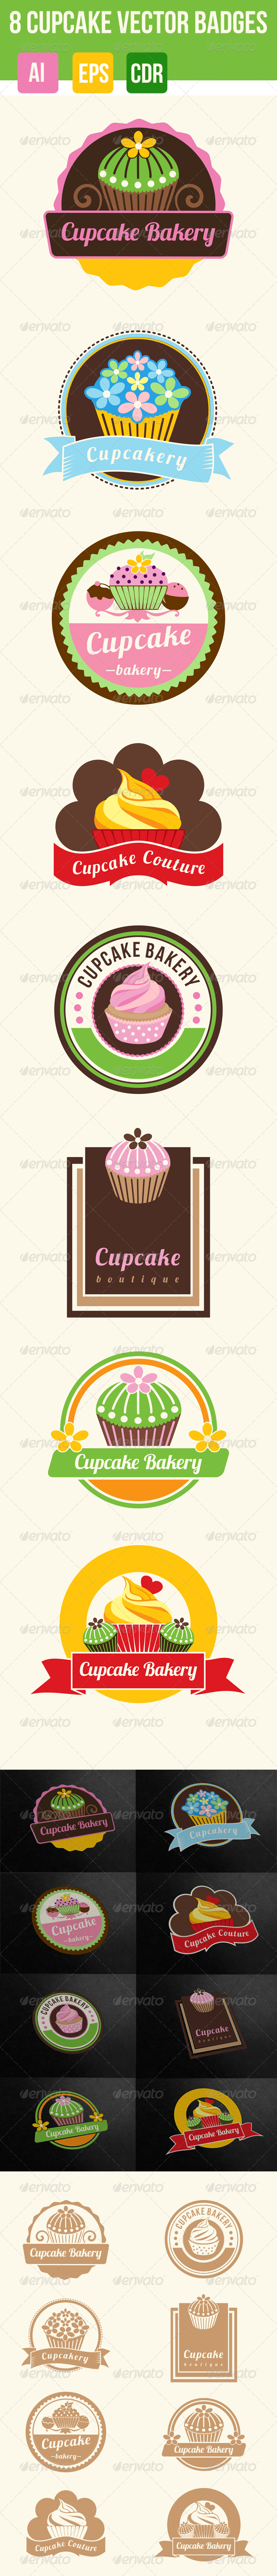 GraphicRiver 8 Cupcakes and Bakery Badges 7356004